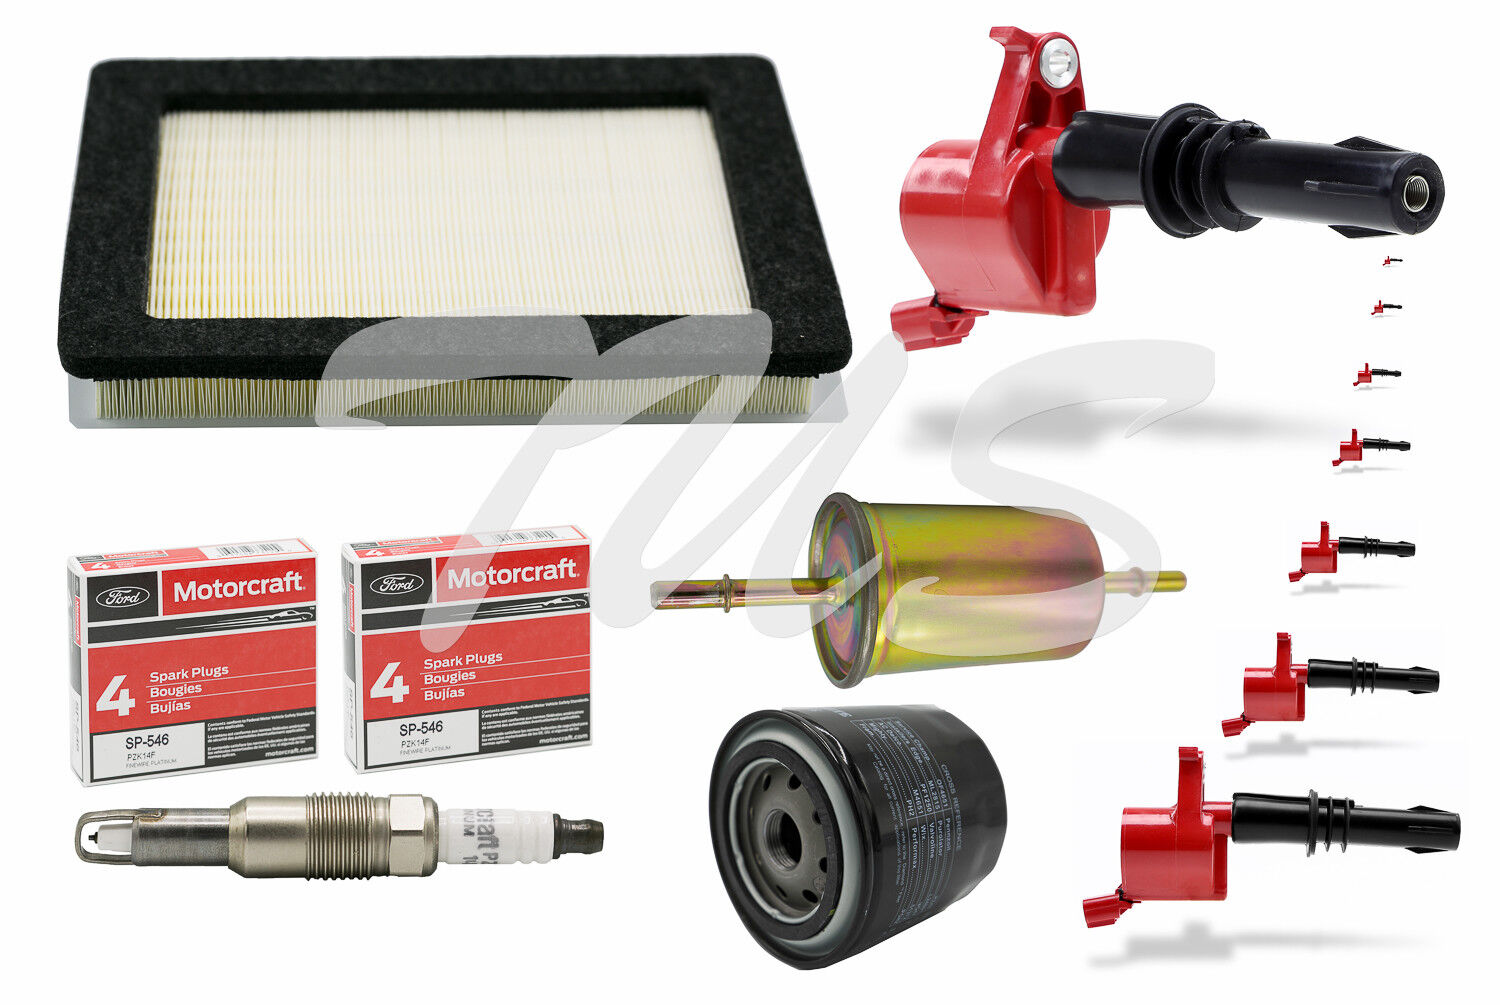 Tune up Kit 2007-2008 Ford F150 5.4l High Performance Ignition Coil Dg511 Sp546 for sale online